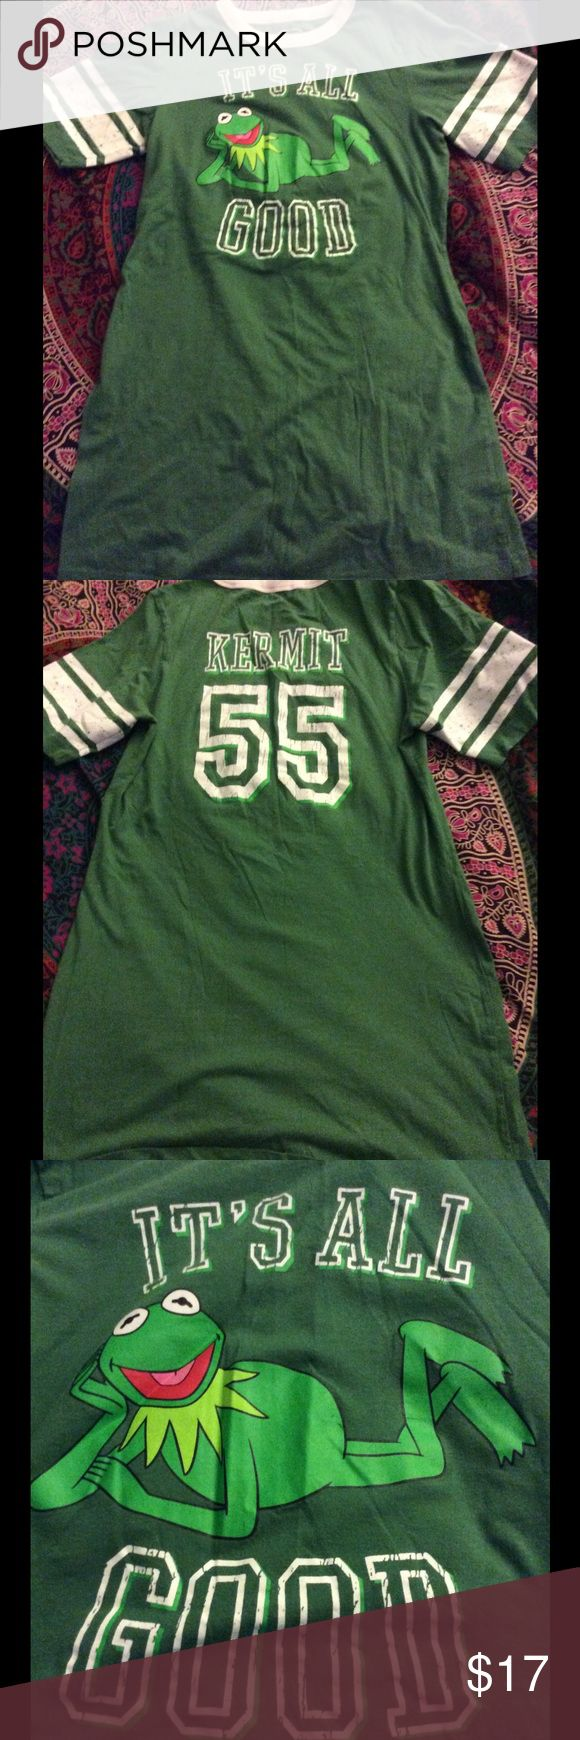 """Kermit Graphic T Shirt Dress Kermit T Shirt Dress  Jrs SZ M but S for Women Great Clean Preloved condition  Please check measurements to ensure best fit Pit to pit - approx 16.5 laying flat unstretched  Length - approx 29"""" Dresses Mini"""